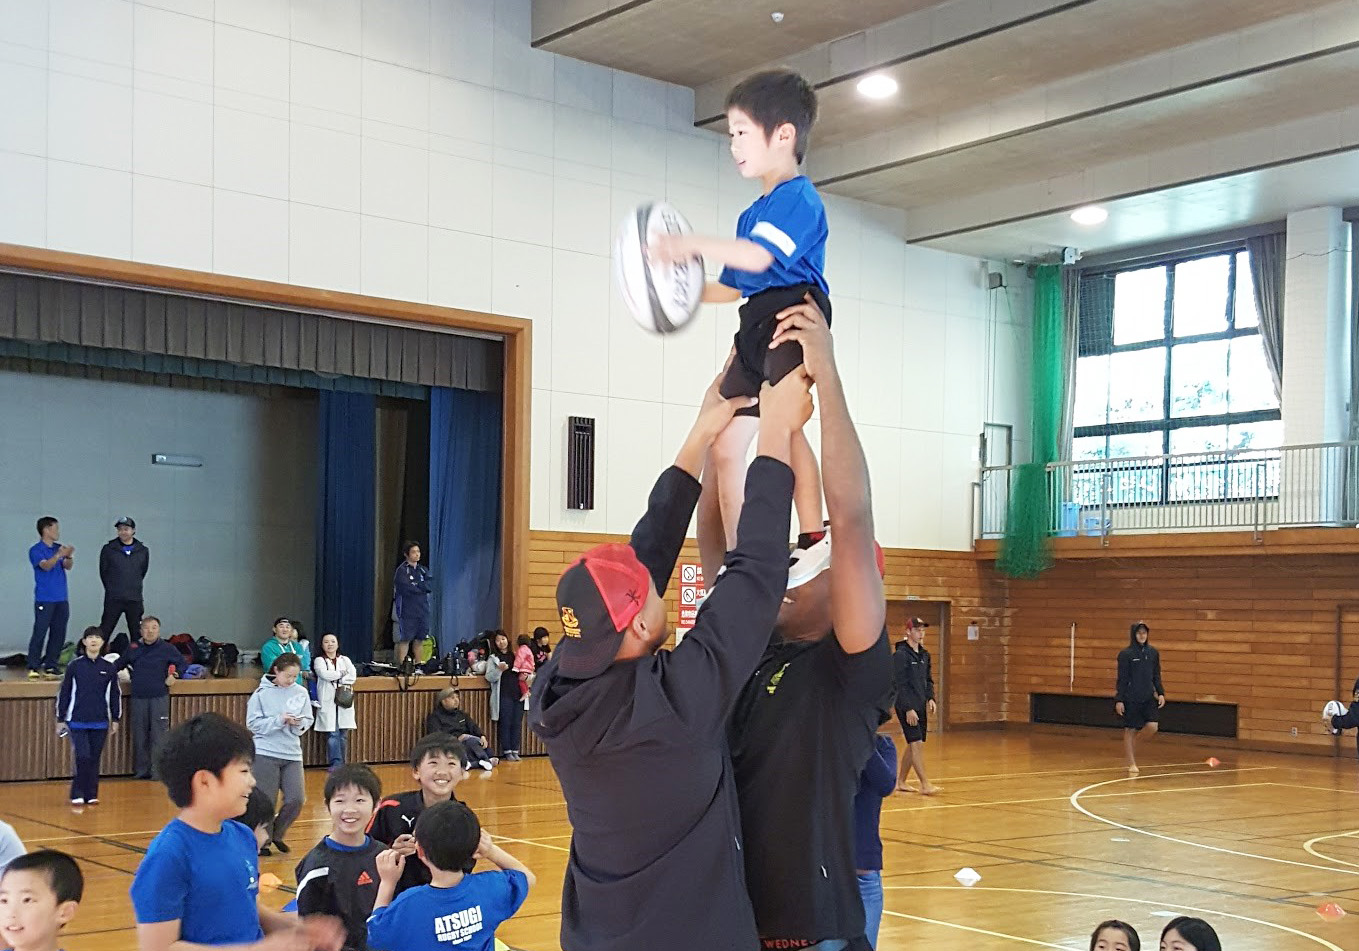 Two Hamilton Boys Rugby players lift a young boy into the air to catch a rugby ball